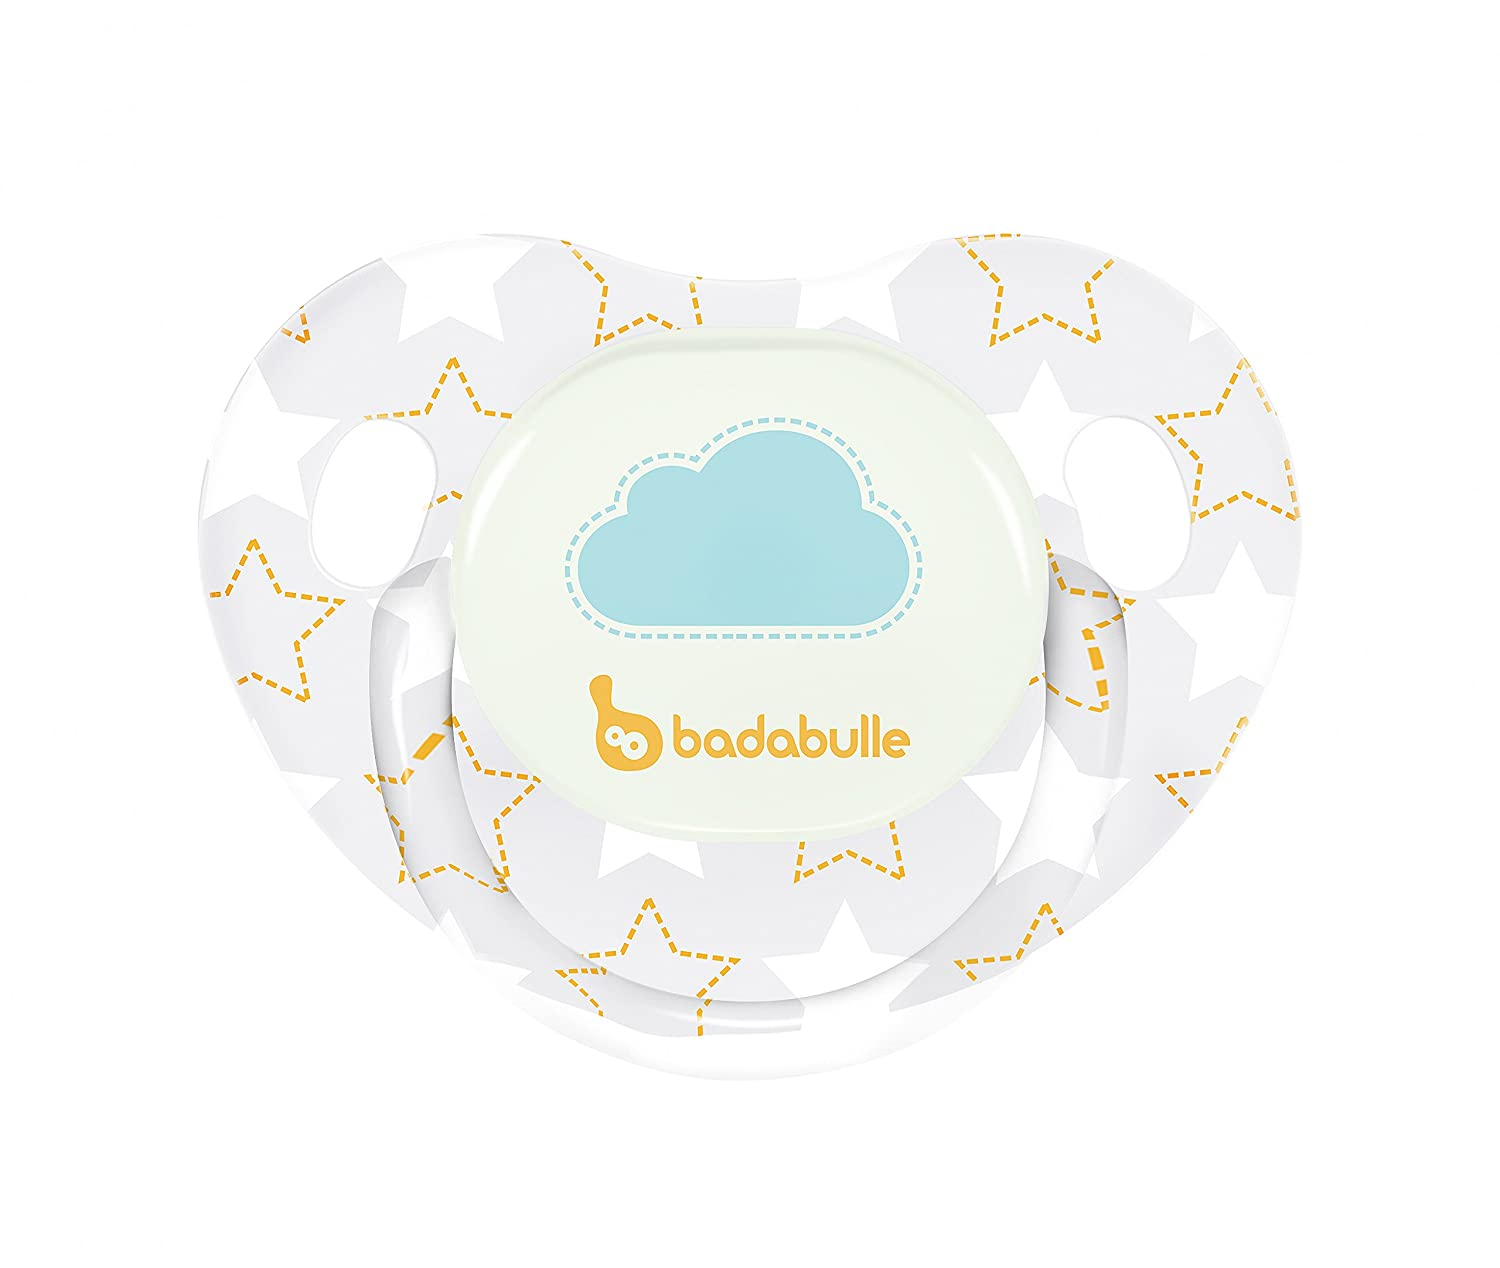 Badabulle Glow In The Dark Physiological Pacifiers, 12 to 36 Months, White Stars, Pack of 2 BABYMOOV UK LTD B011222